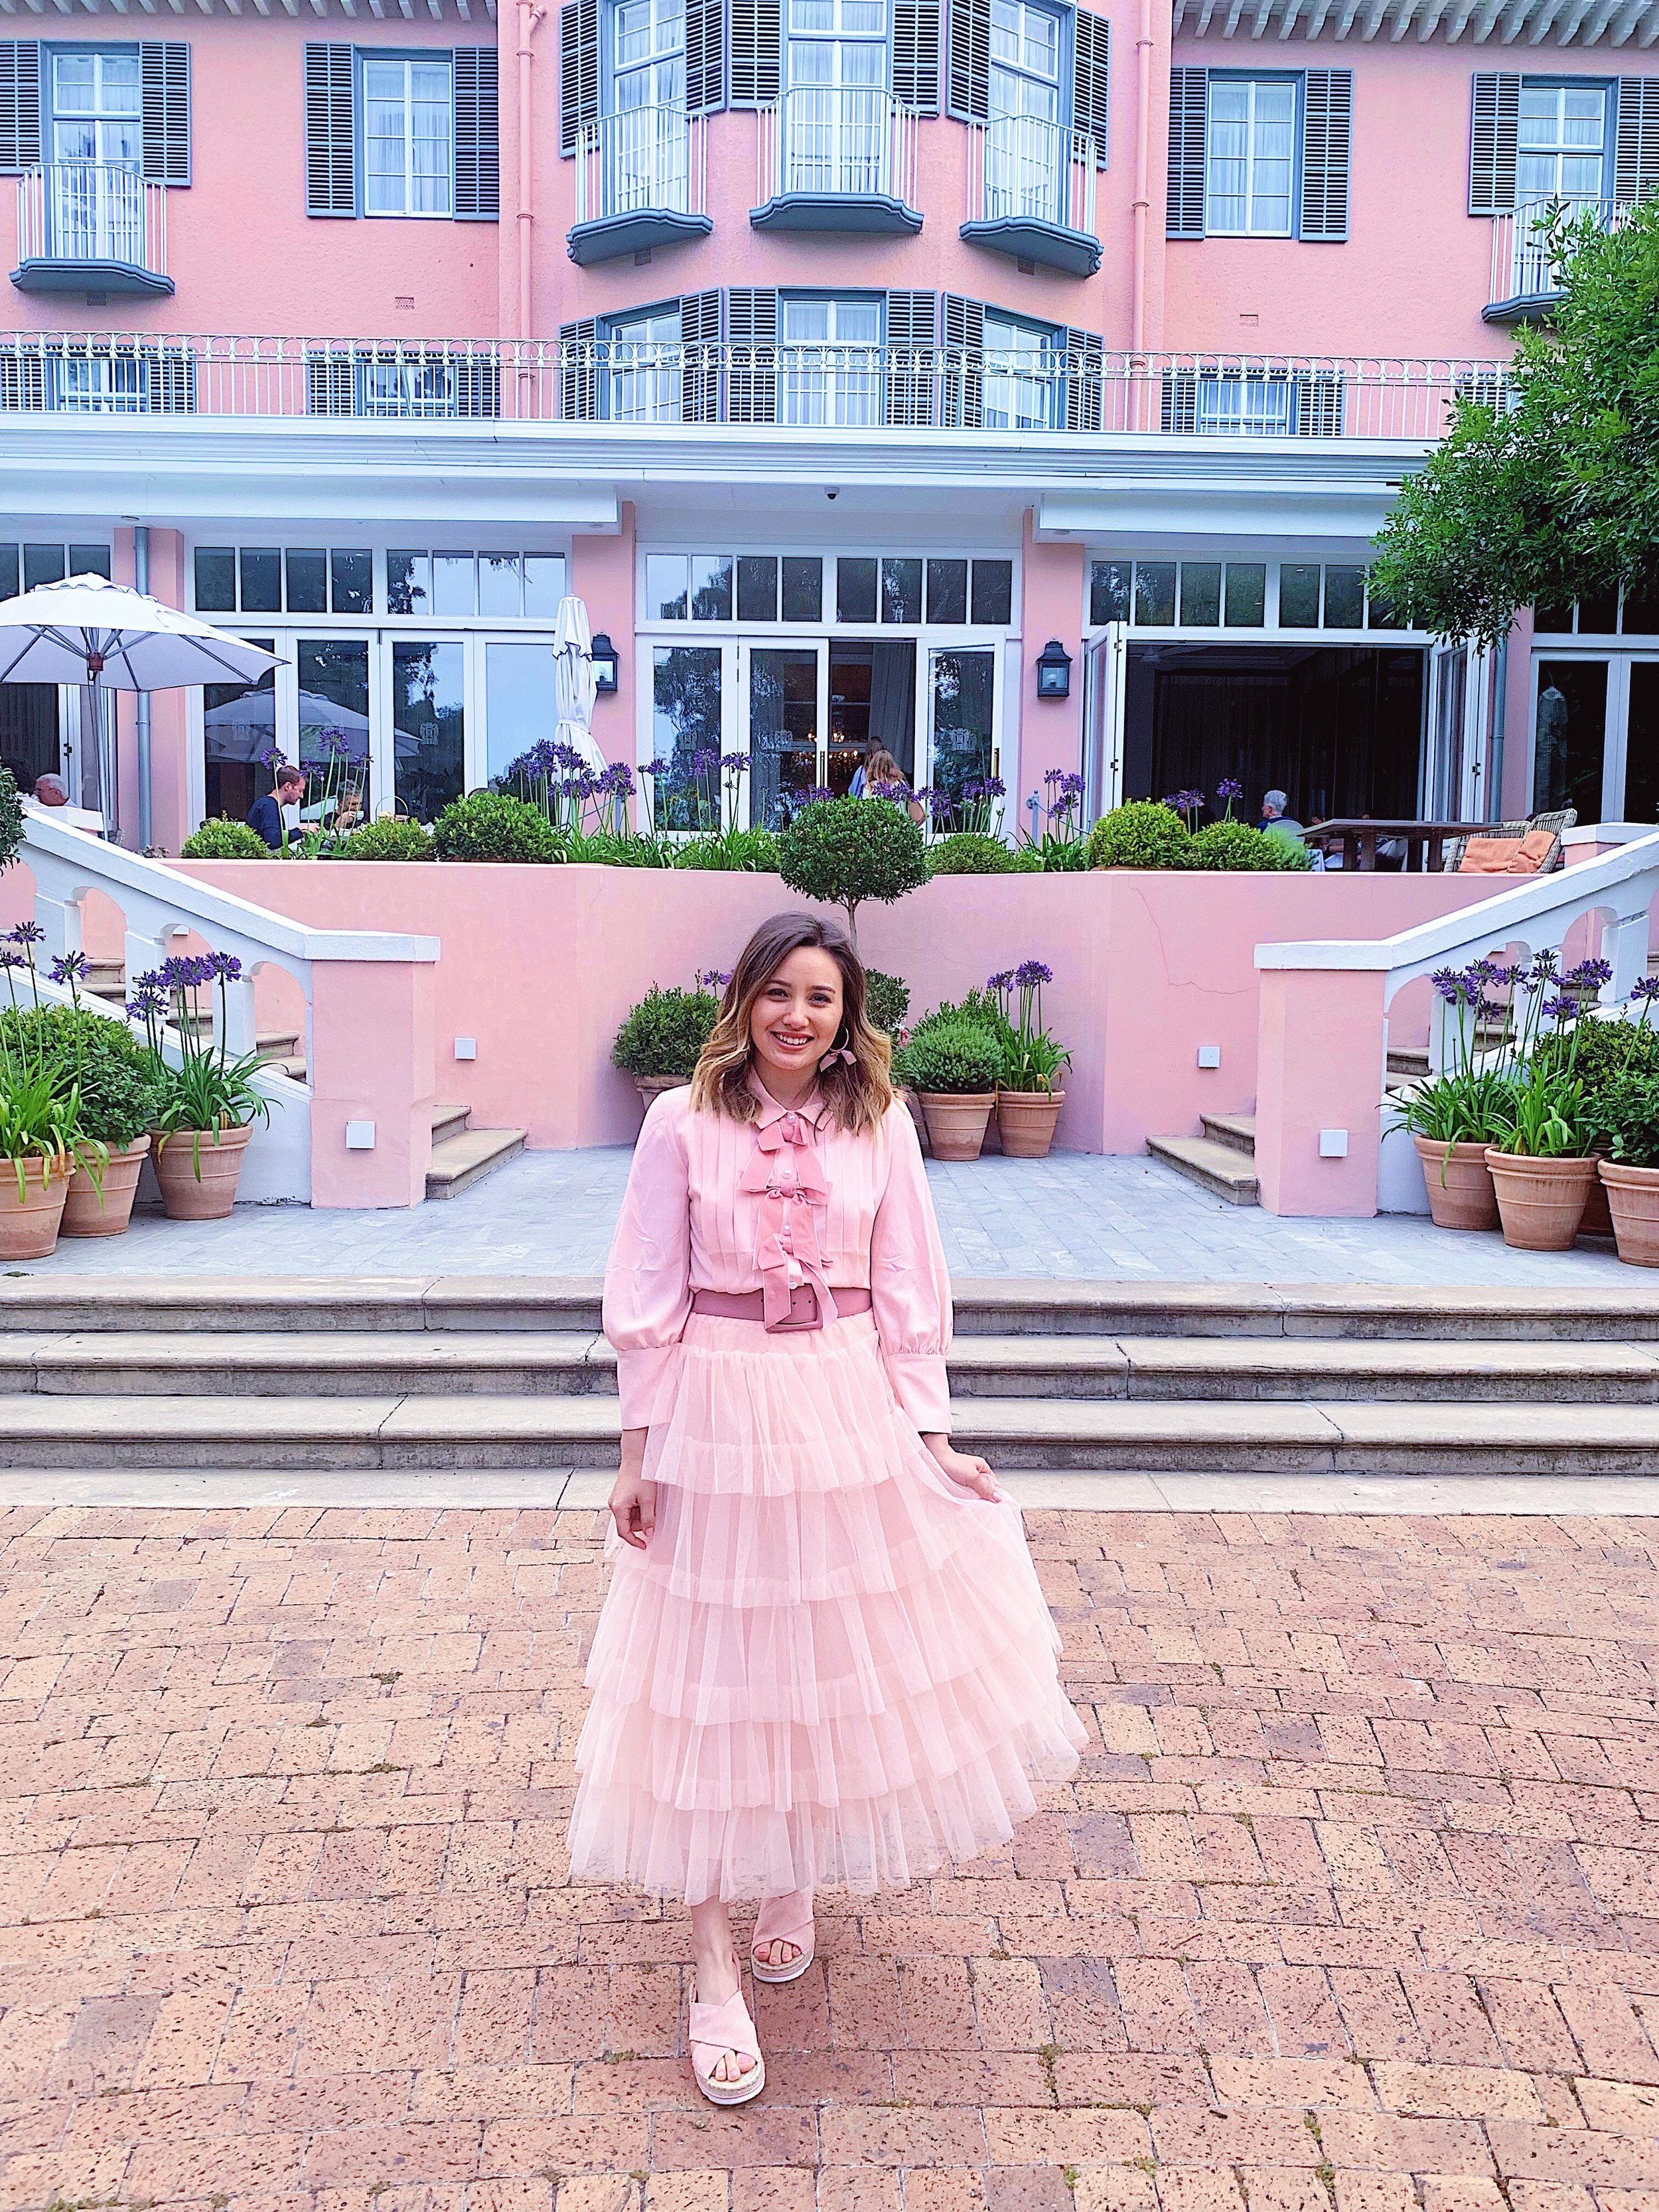 Belmond Mount Nelson - A pink palace with beautiful landscaping a flowers everywhere! I'm going to be real with y'all - high tea was not anything great at all, however it was much cheaper than in London and the experience of getting to see the hotel and grounds was definitely worth going!